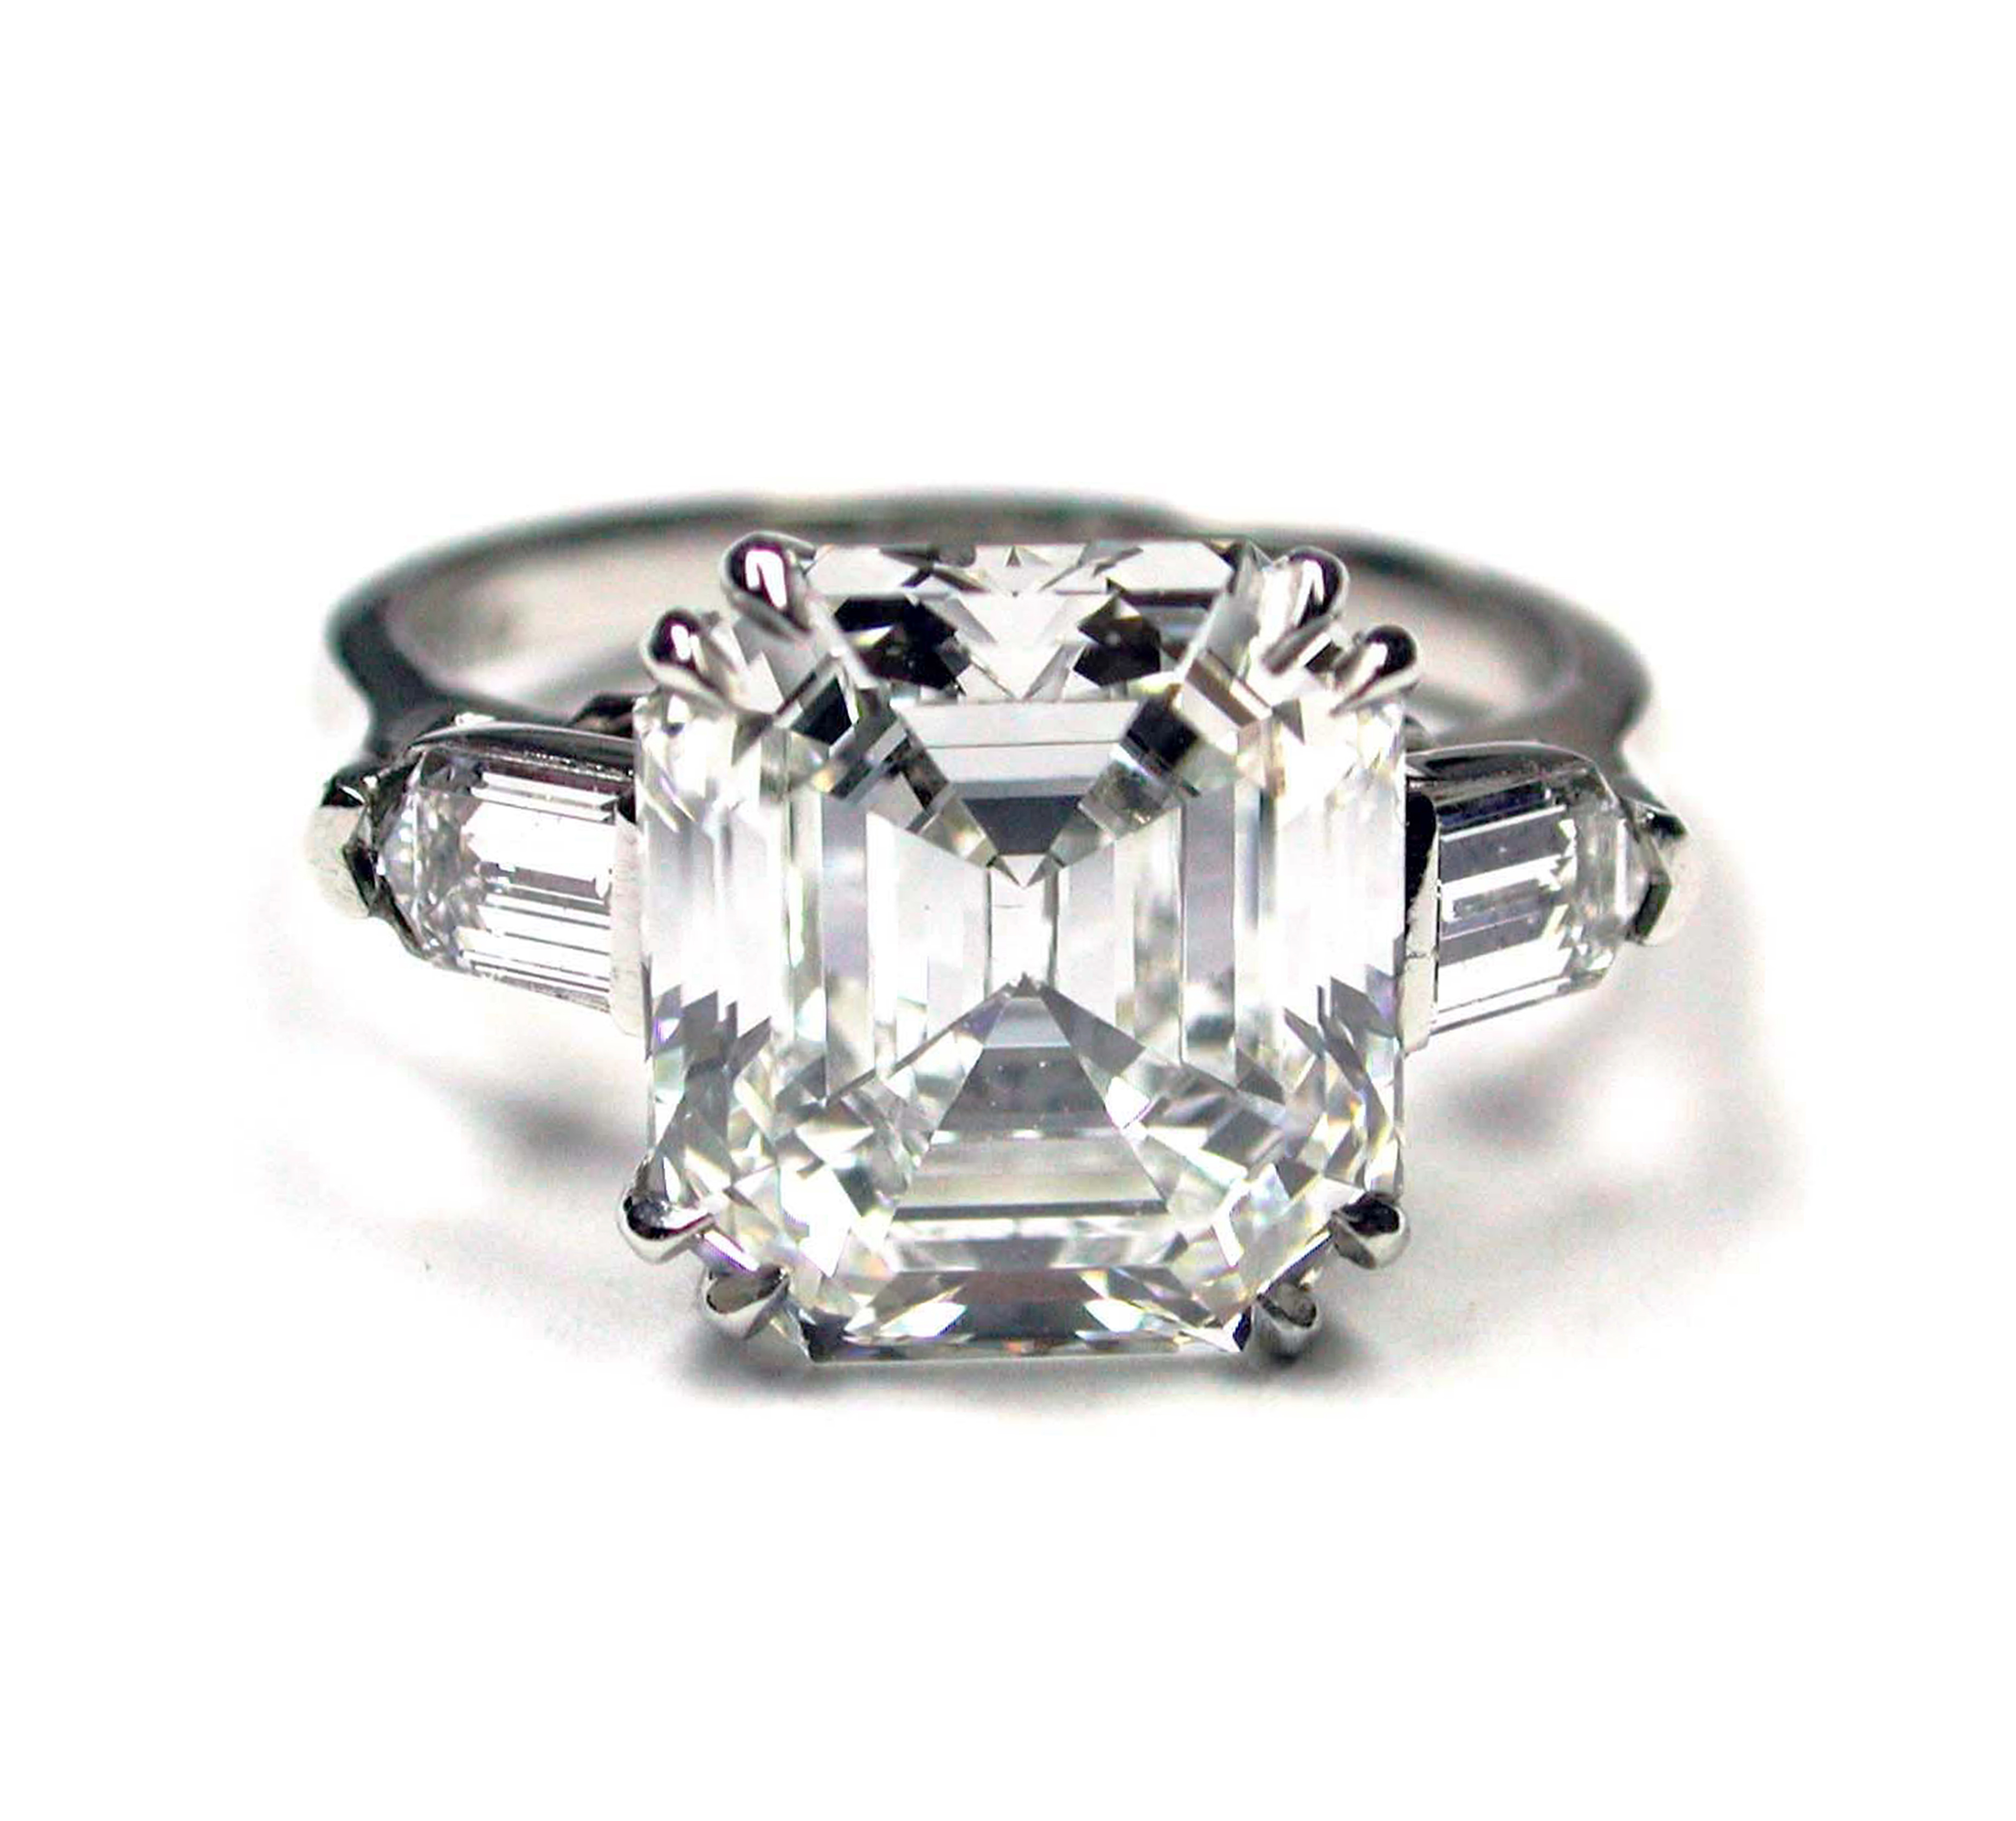 Asscher%20cut%20deco%20ring%20w:bullets%205.44%20as%20f-vvs2.original